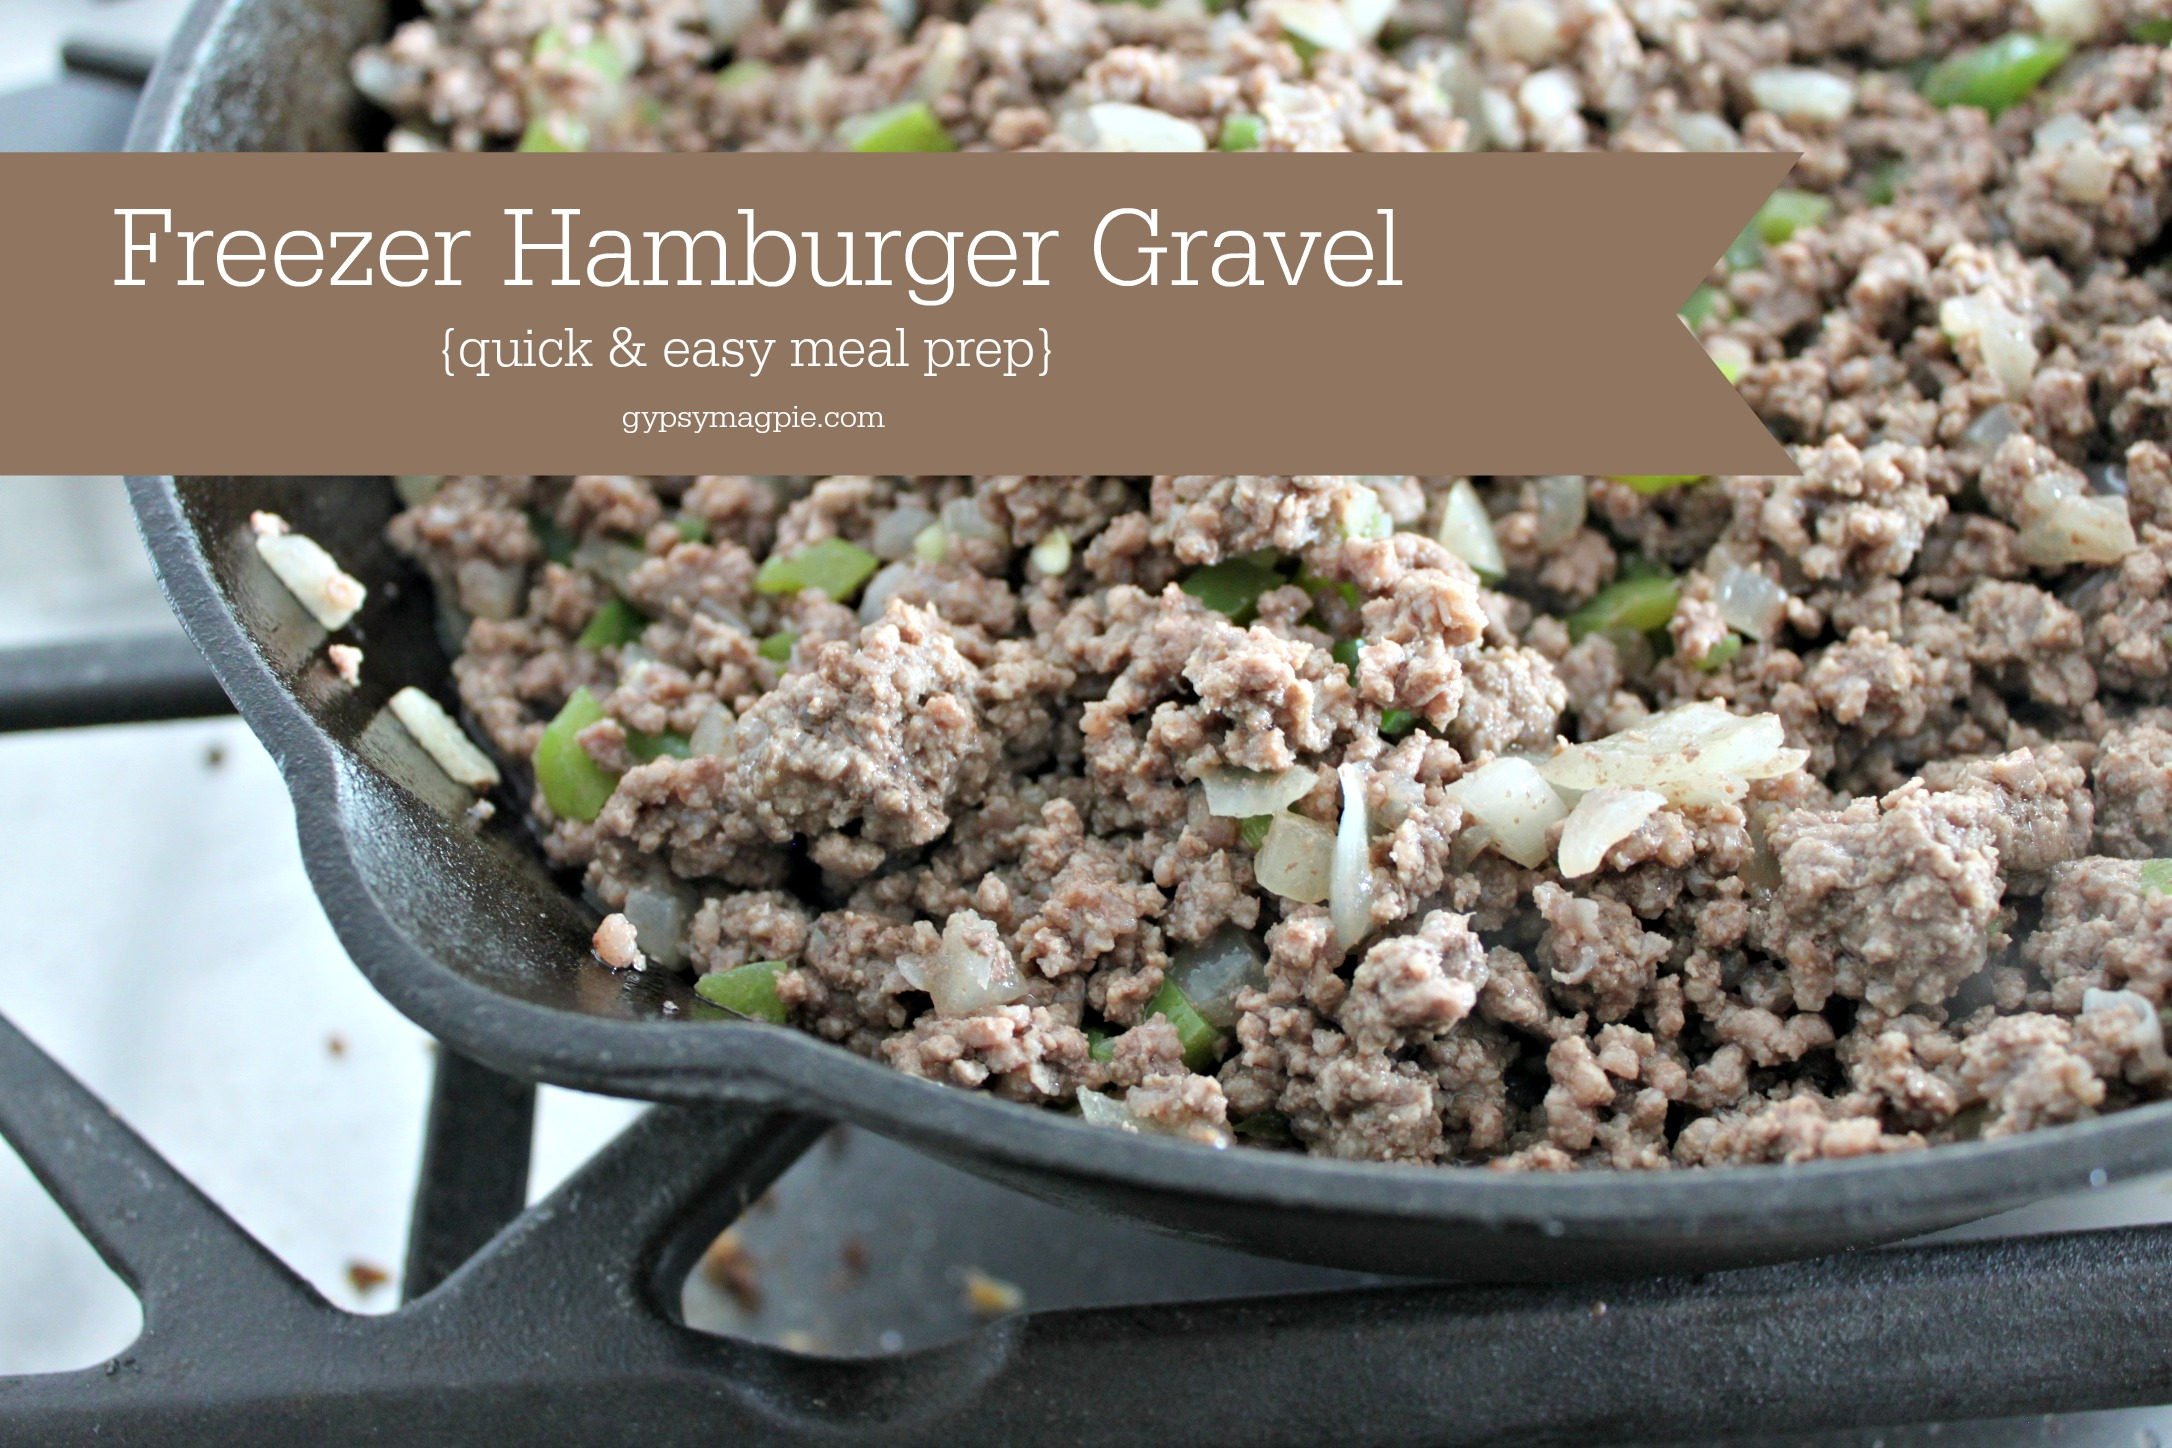 Prepping and freezing hamburger gravel makes meals a breeze! | Gypsy Magpie